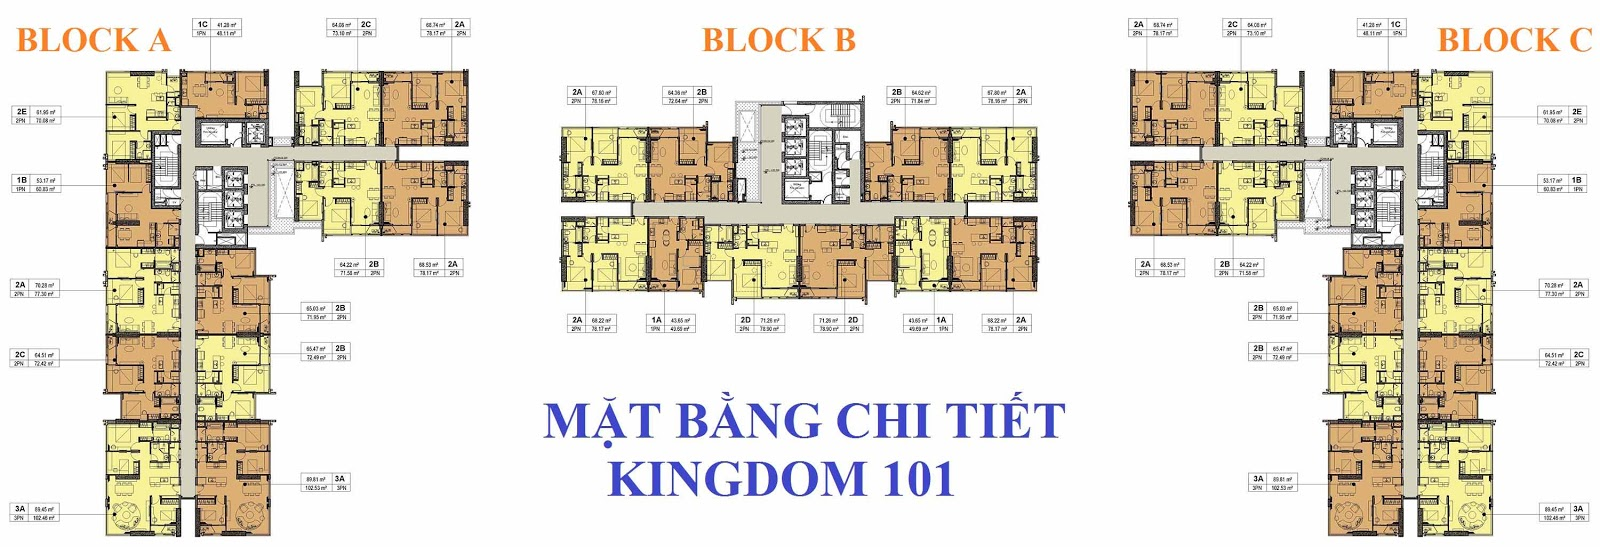 kingdom-101-thiet-ke-mat-bang